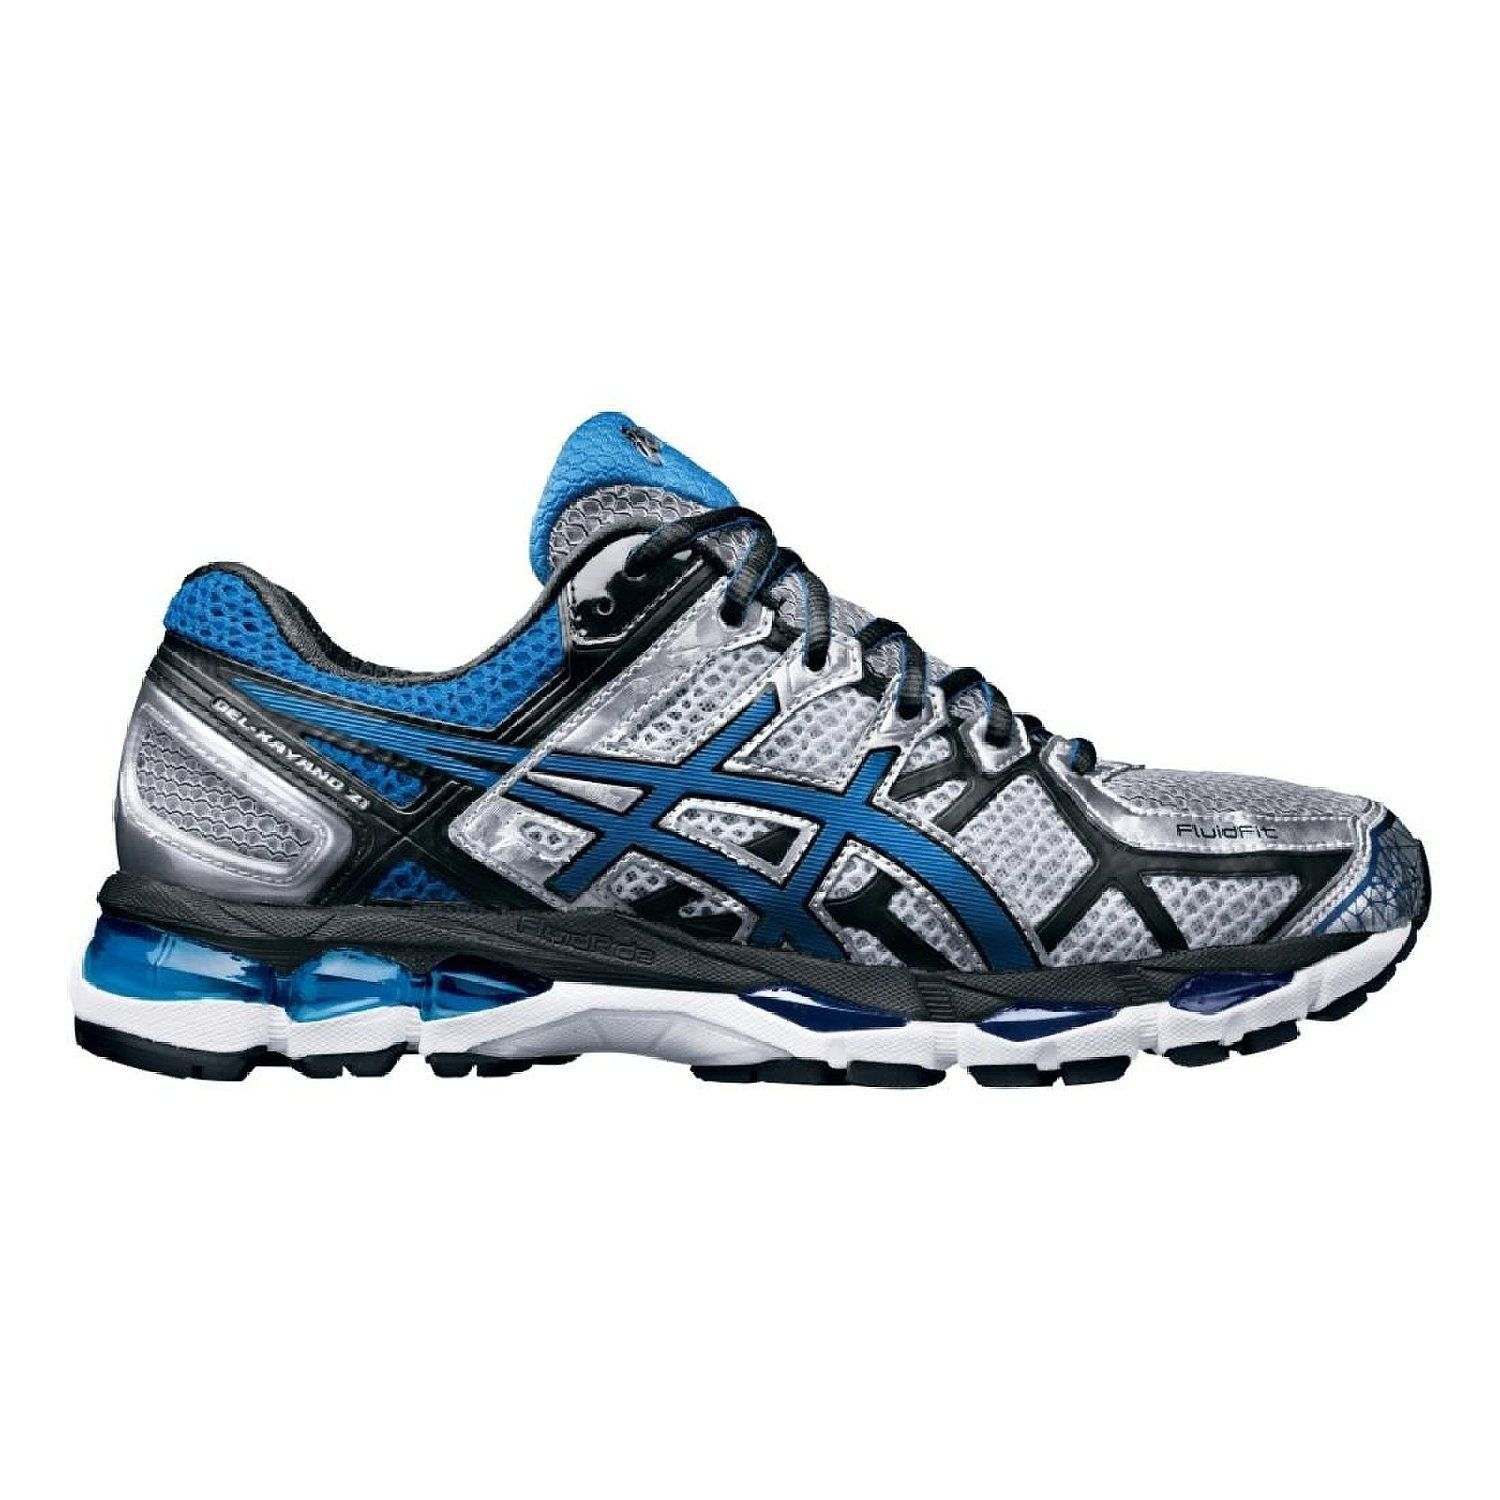 Asics Men's Gel Kayano 21 Running Shoes Lightning Royal